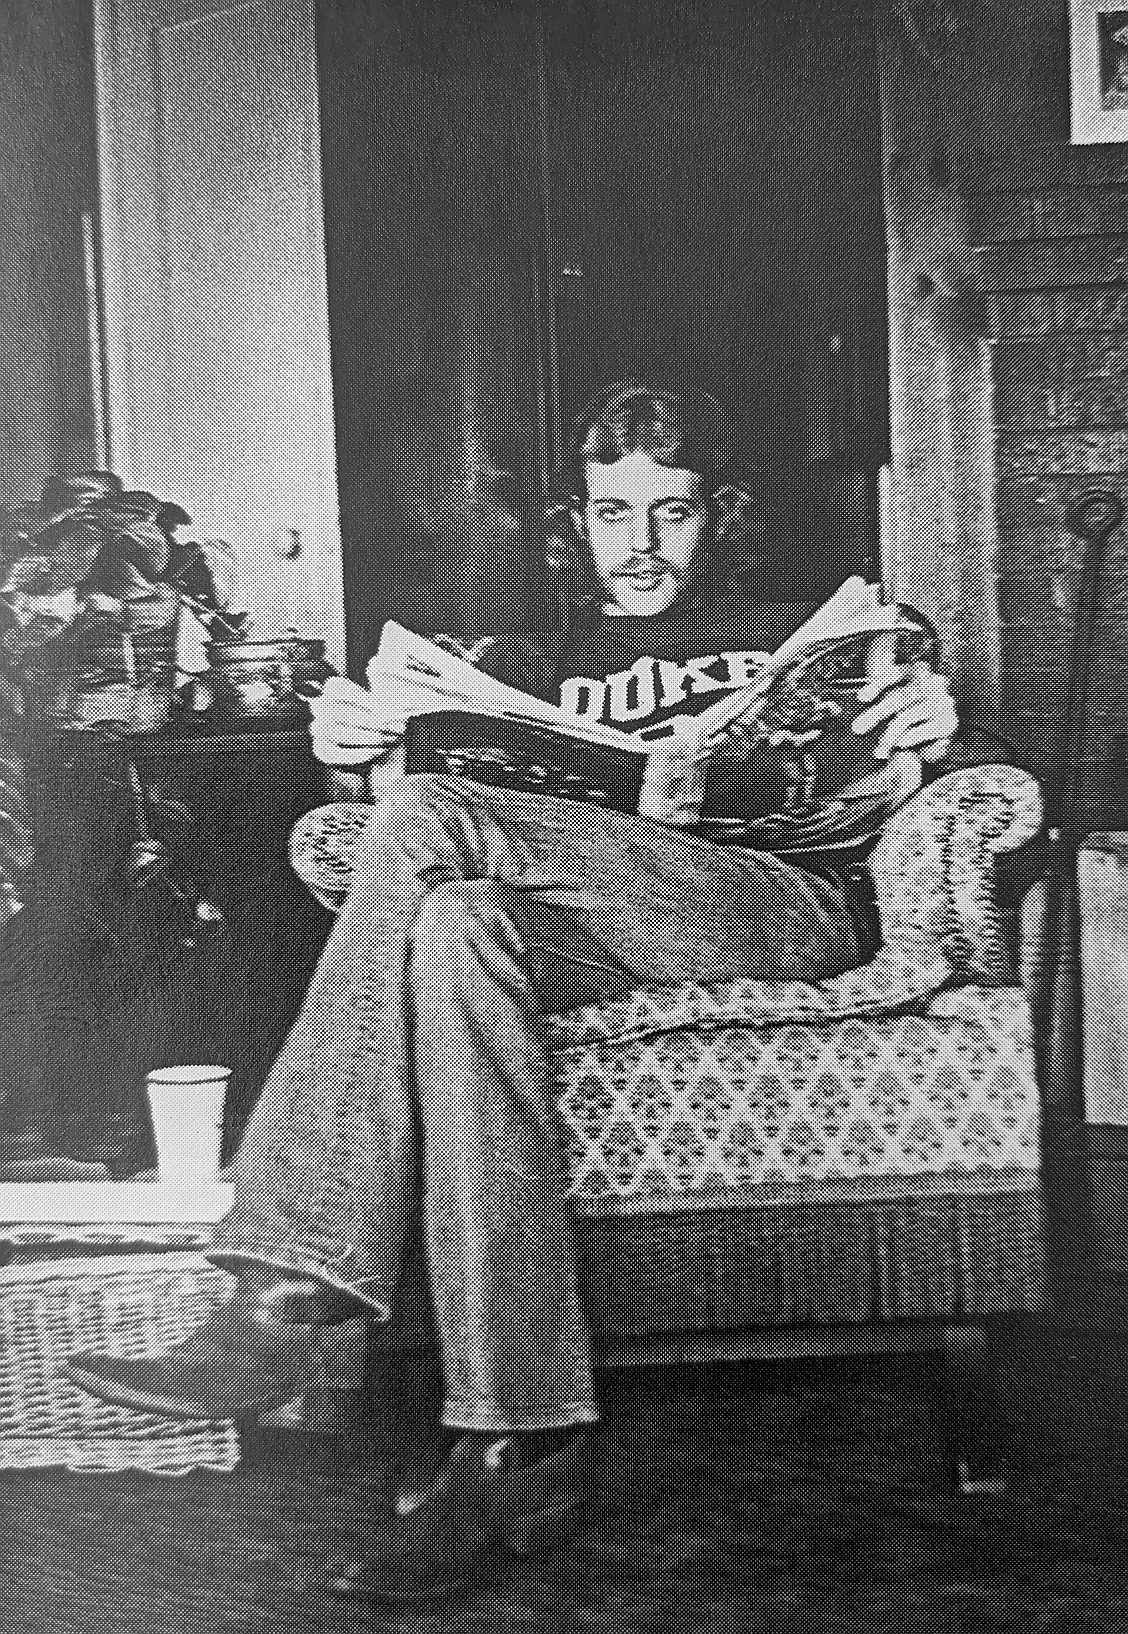 Don Felder, pictured in 1970 reading the Village Voice in upstate New York